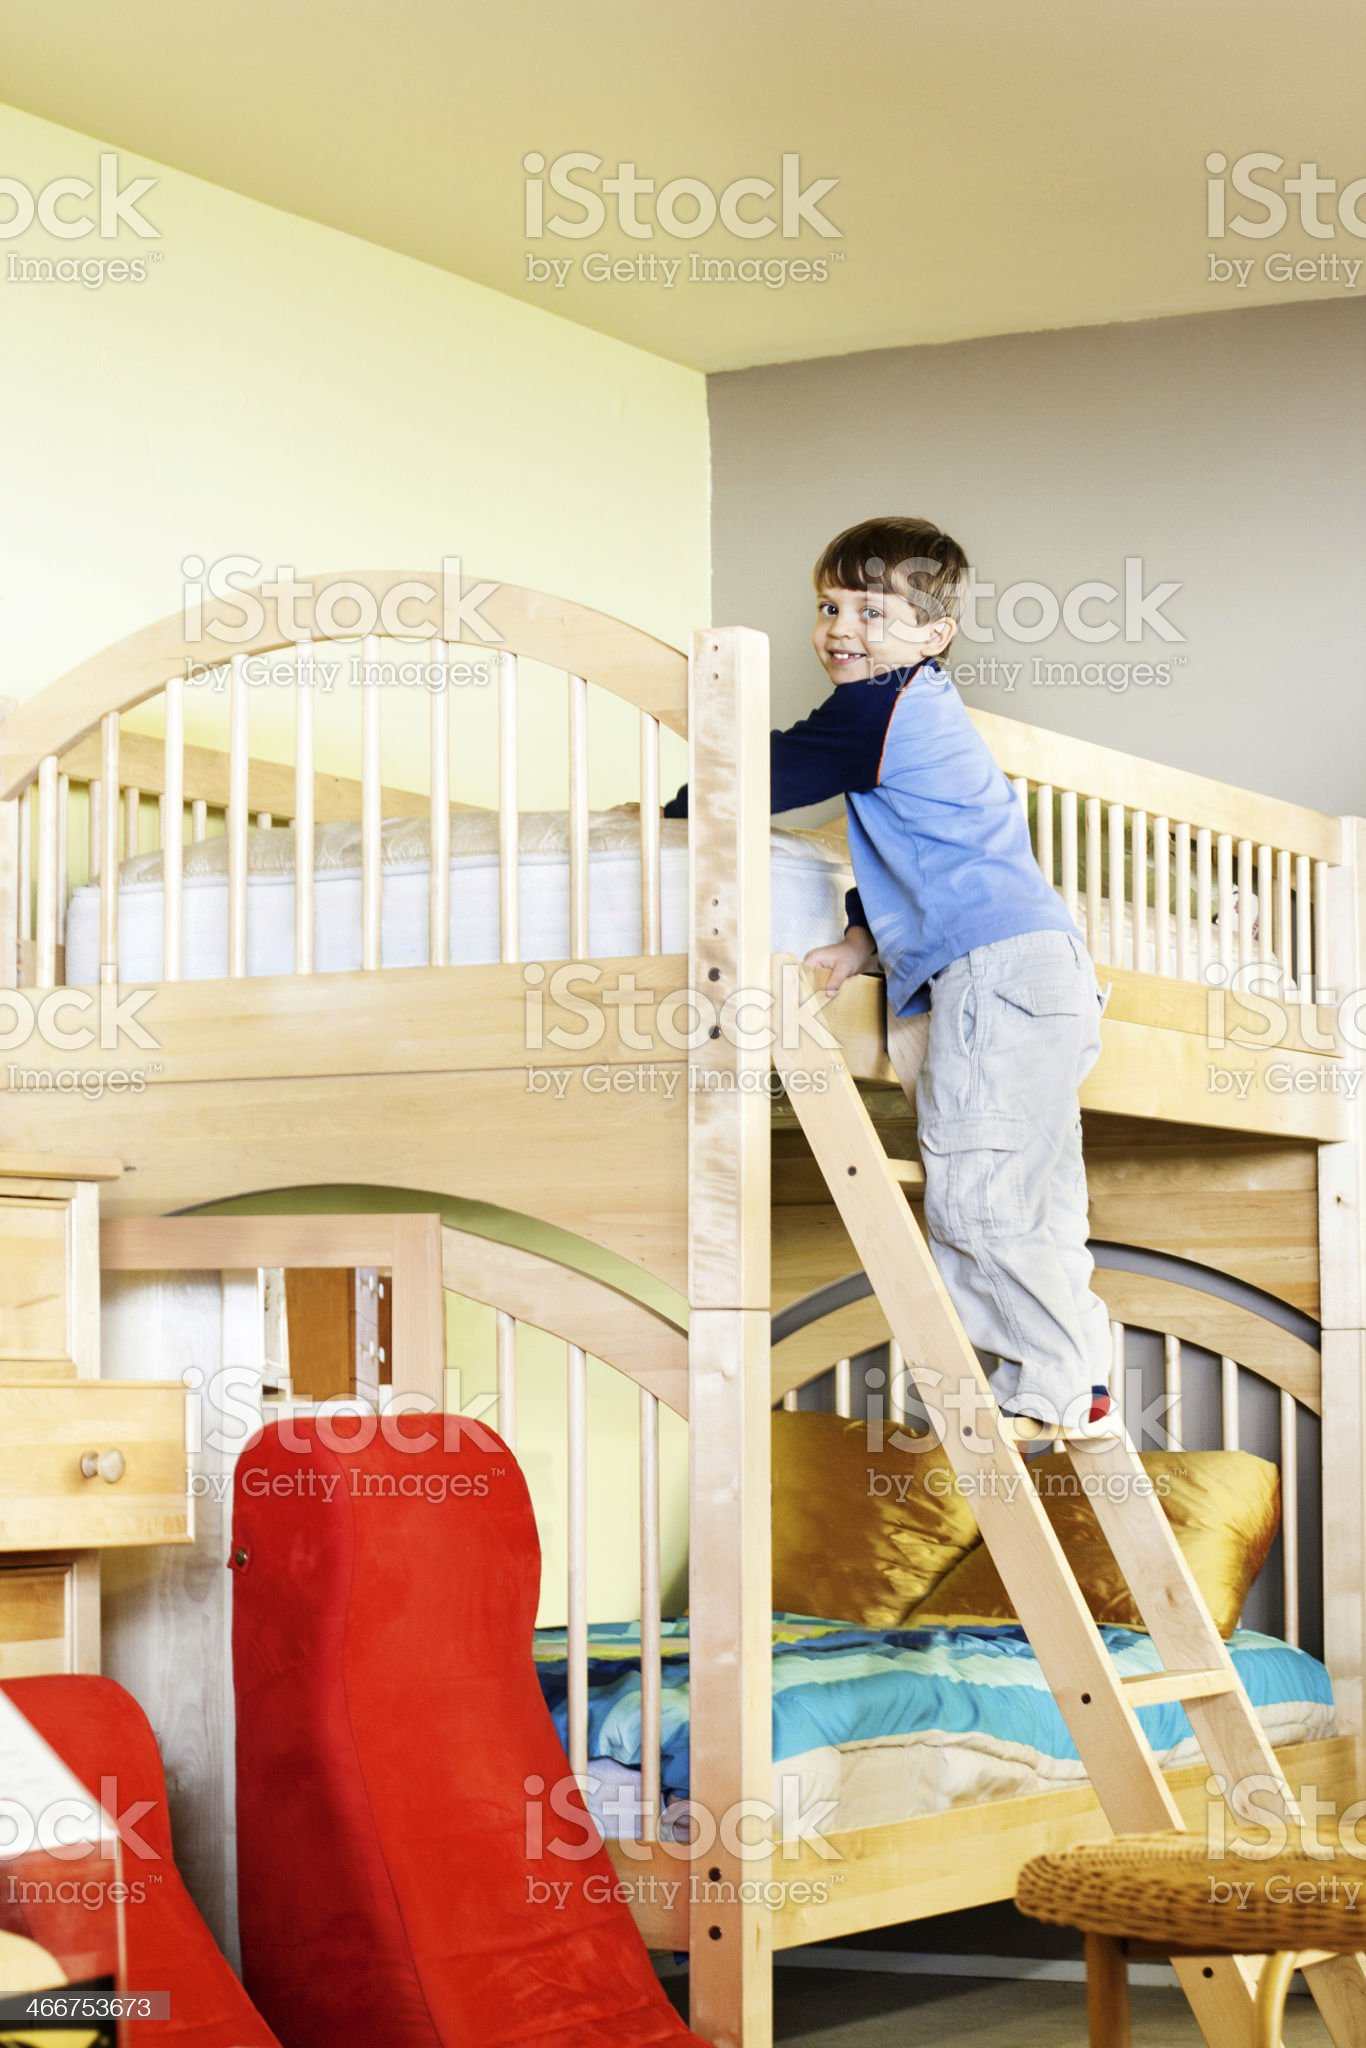 Young boy climbing ladder on wooden bunk bed in child's room royalty-free stock photo